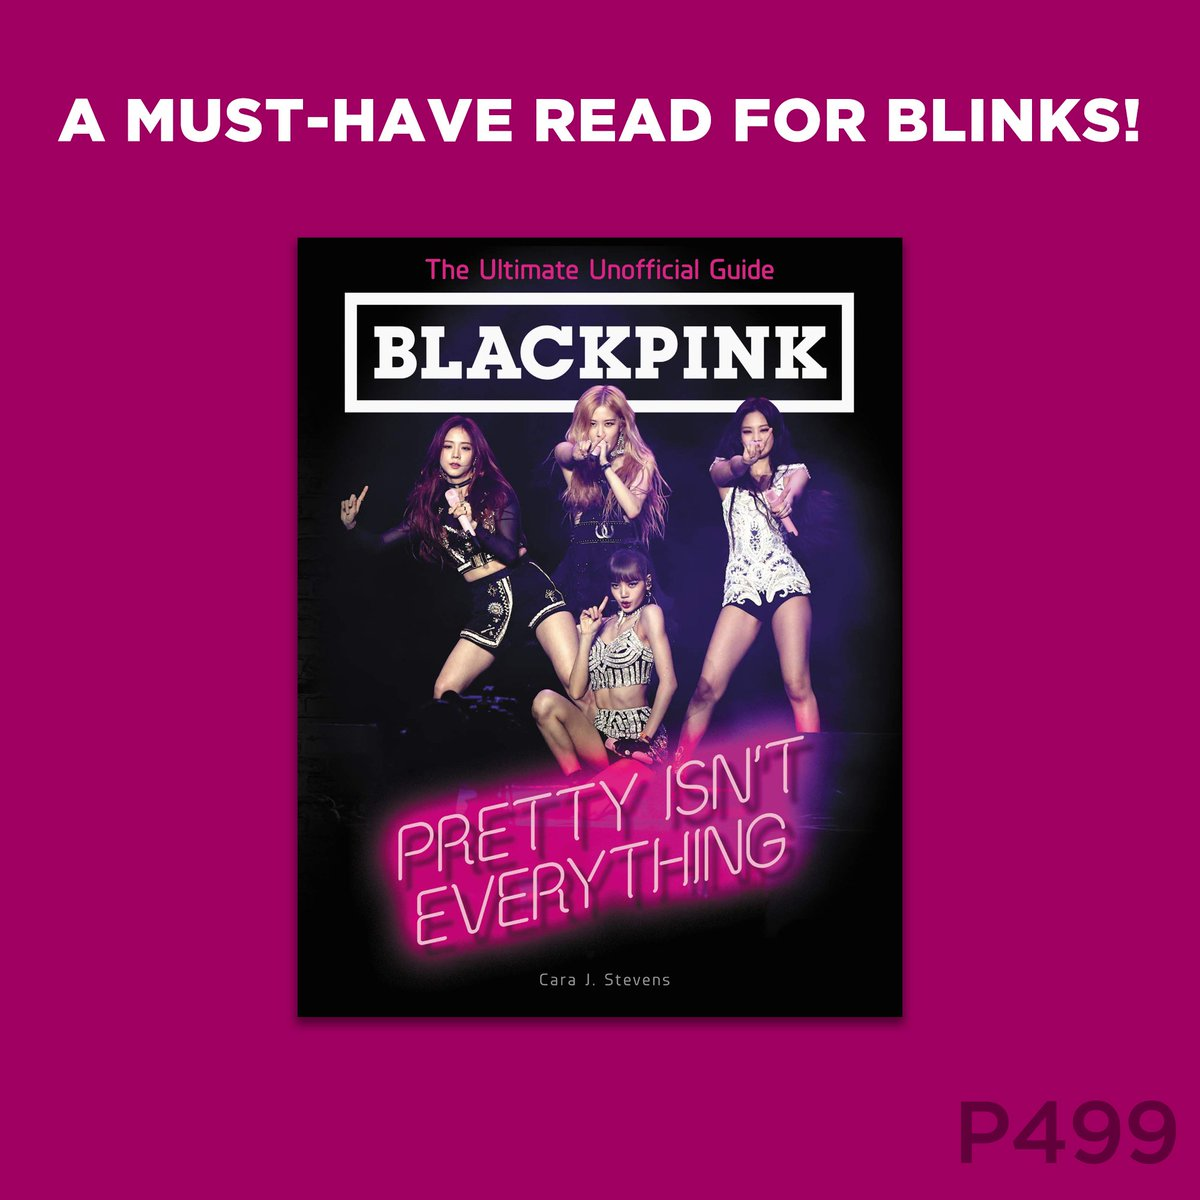 New book in your area! Grab a copy of Blackpink: Pretty Isn't Everything - The Ultimate Unofficial Guide by Cara J. Stevens.   It's available in selected NBS branches for only P499. #BLACKPINK #NBSNewReads #NBSeveryday